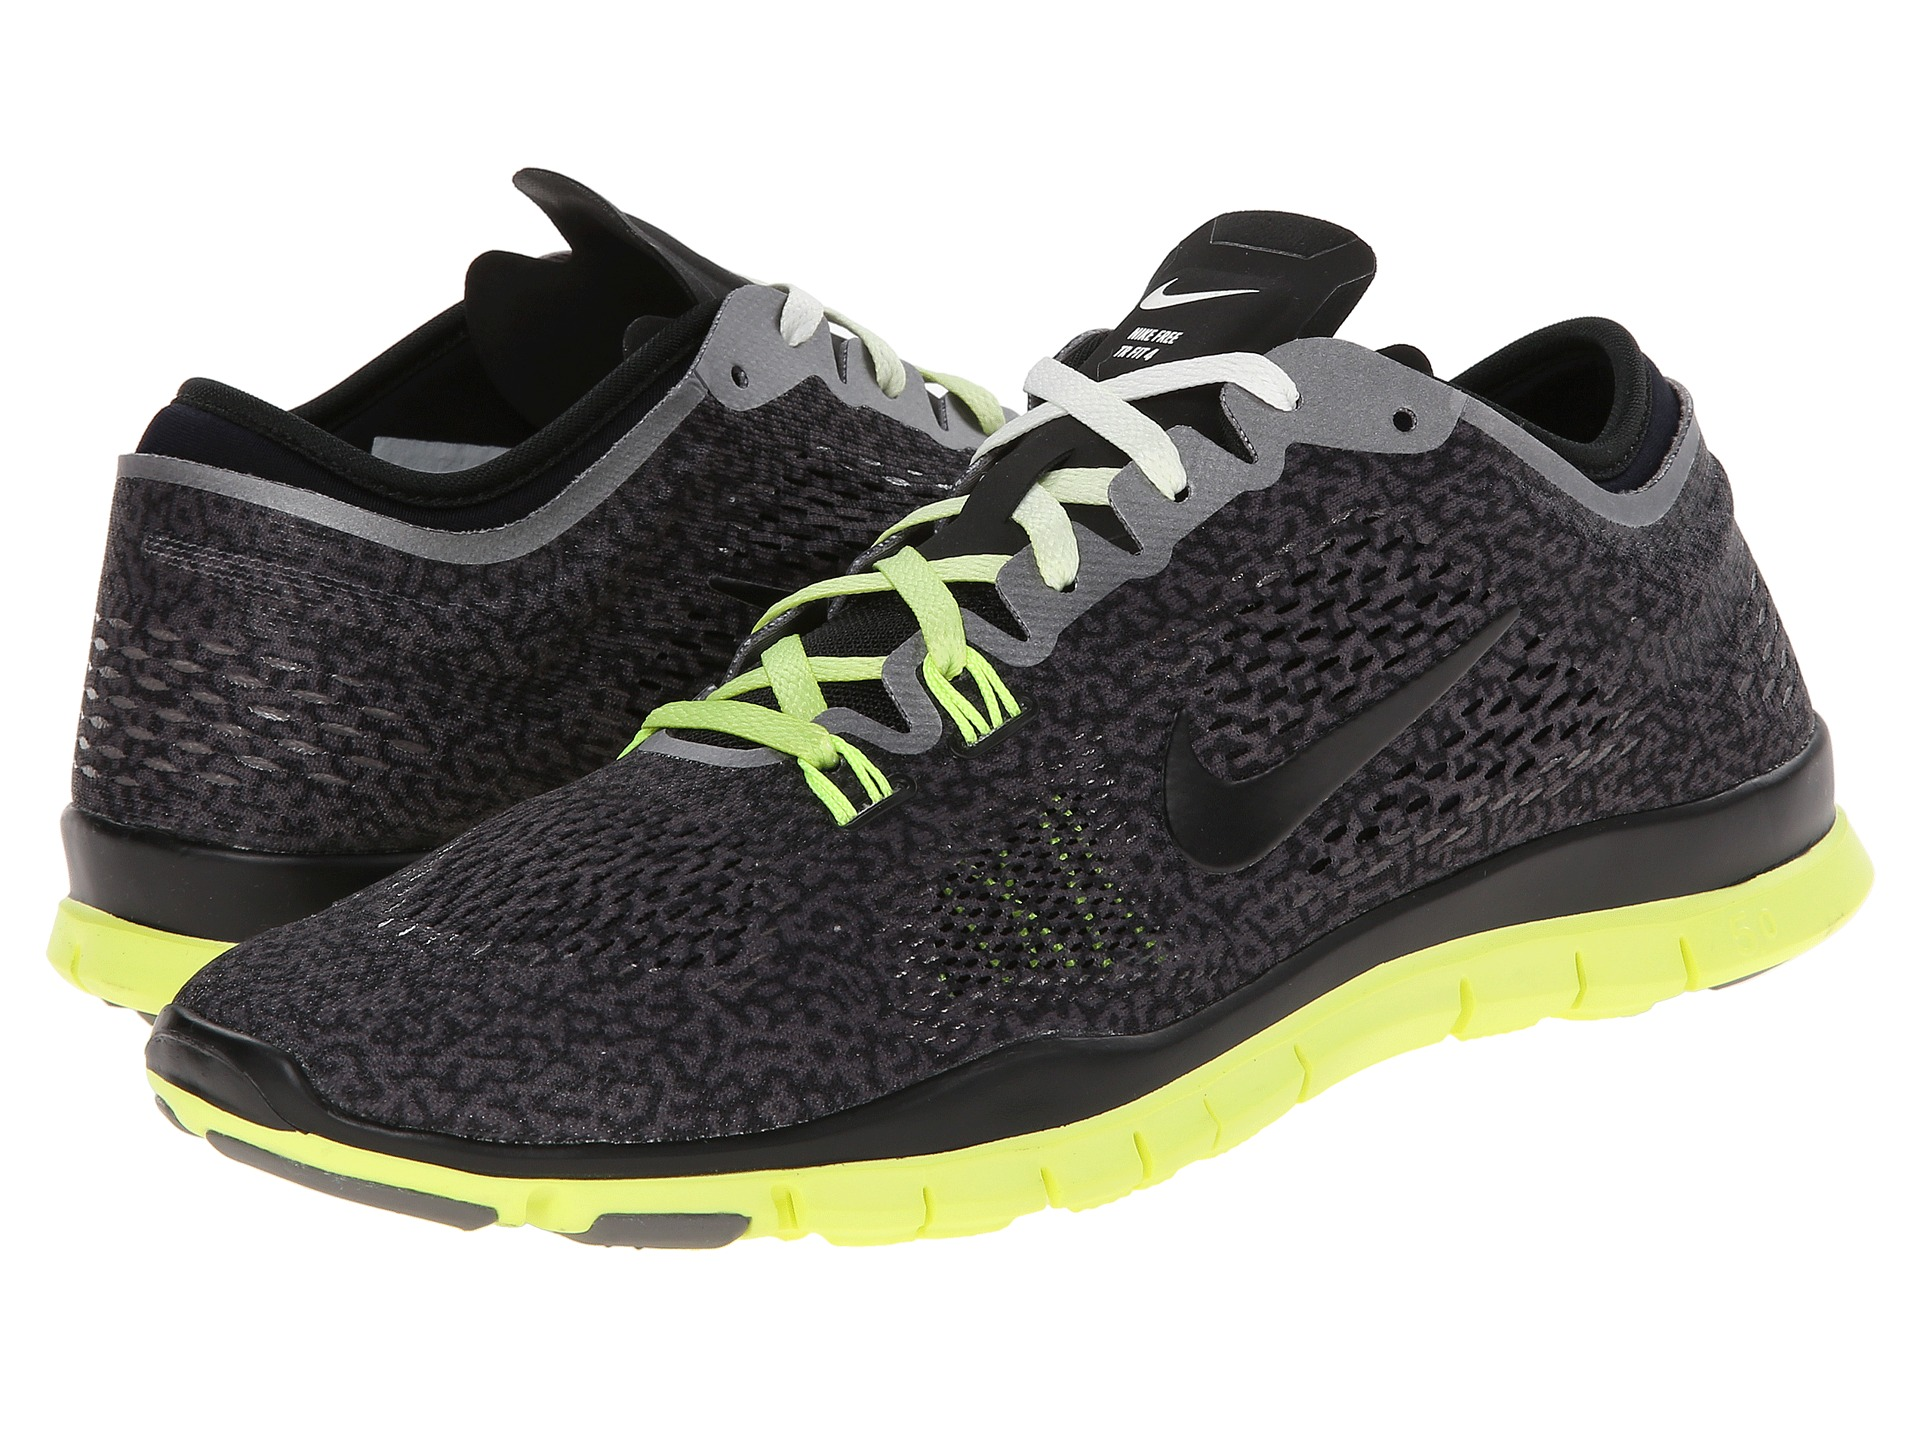 new arrival 2404a 9c3c5 ... 5.0 Trainer zappos nike free 3 Philippines retail price .